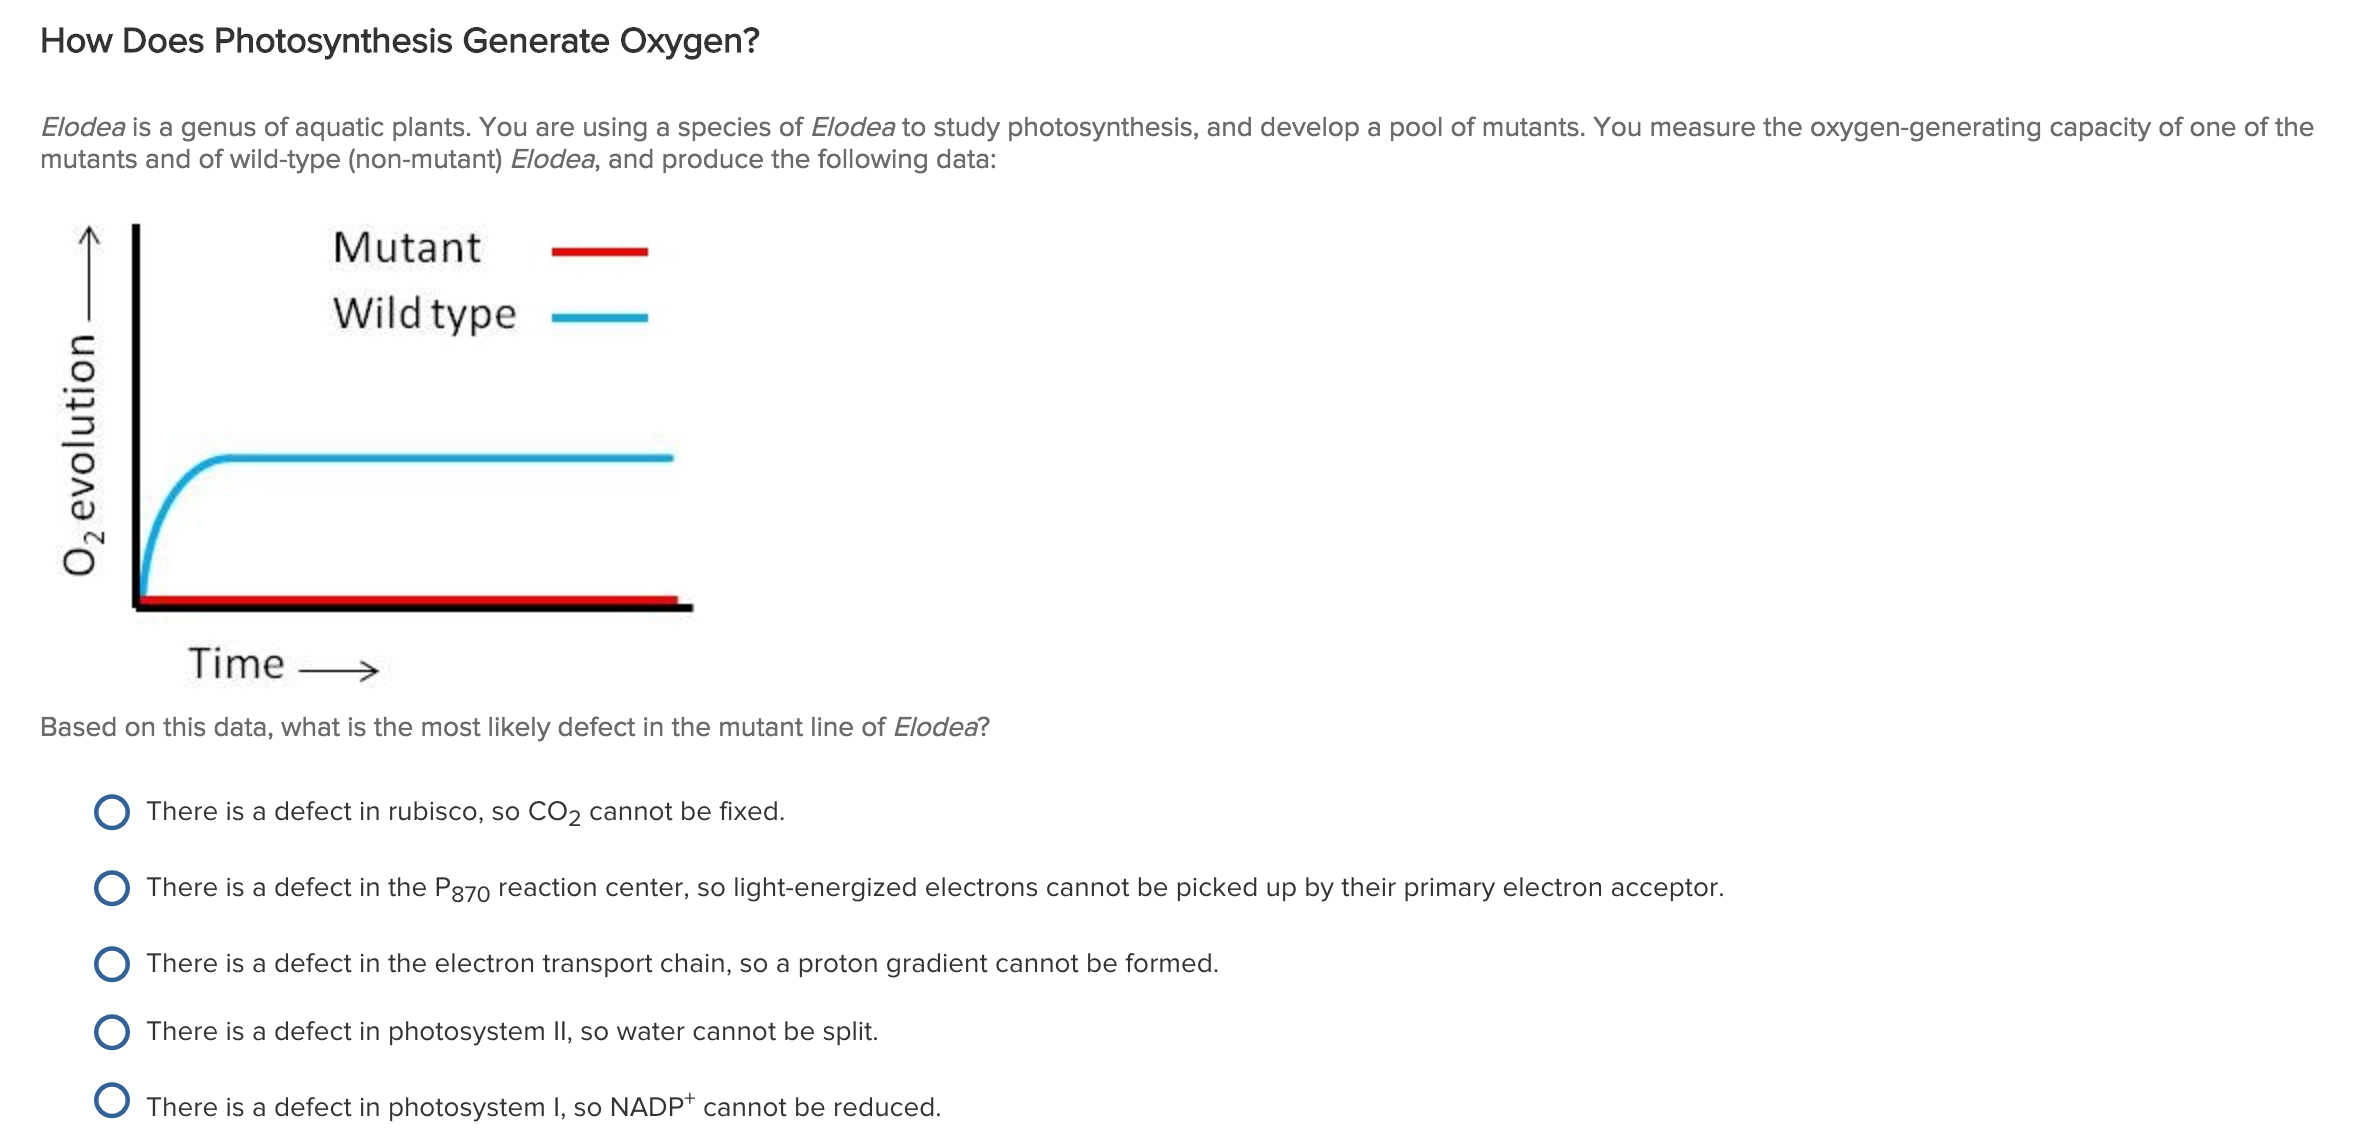 photosynthesis of elodea Photosynthesis rate quiz while elodea is undergoing photosynthesis and releasing oxygen, it is also using oxygen for aeroboc respiration a true b false.